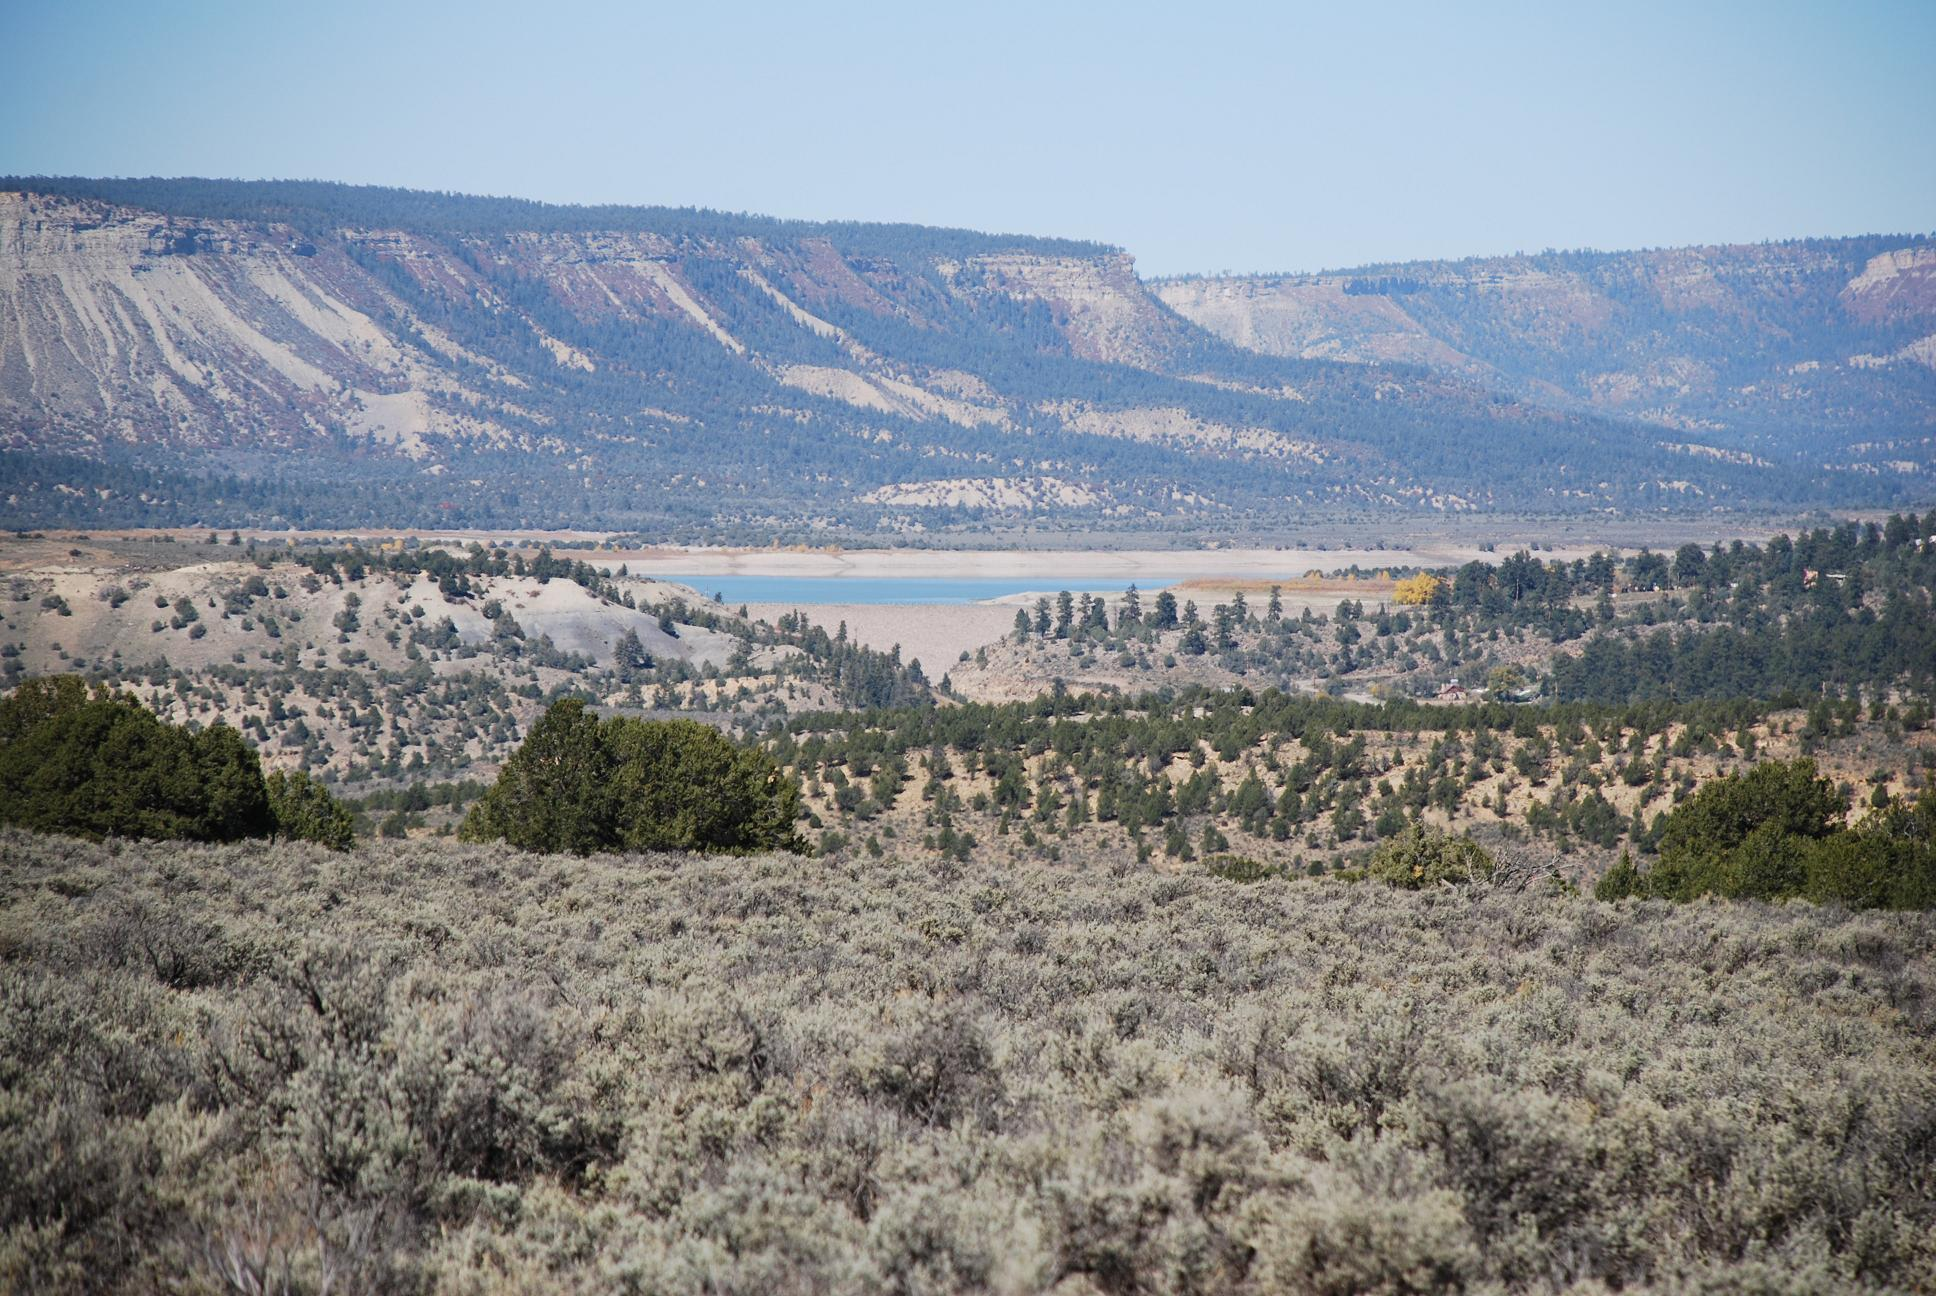 Ranchos del Vado Lots, Tierra Amarilla, NM 87575 - Tierra Amarilla, NM real estate listing